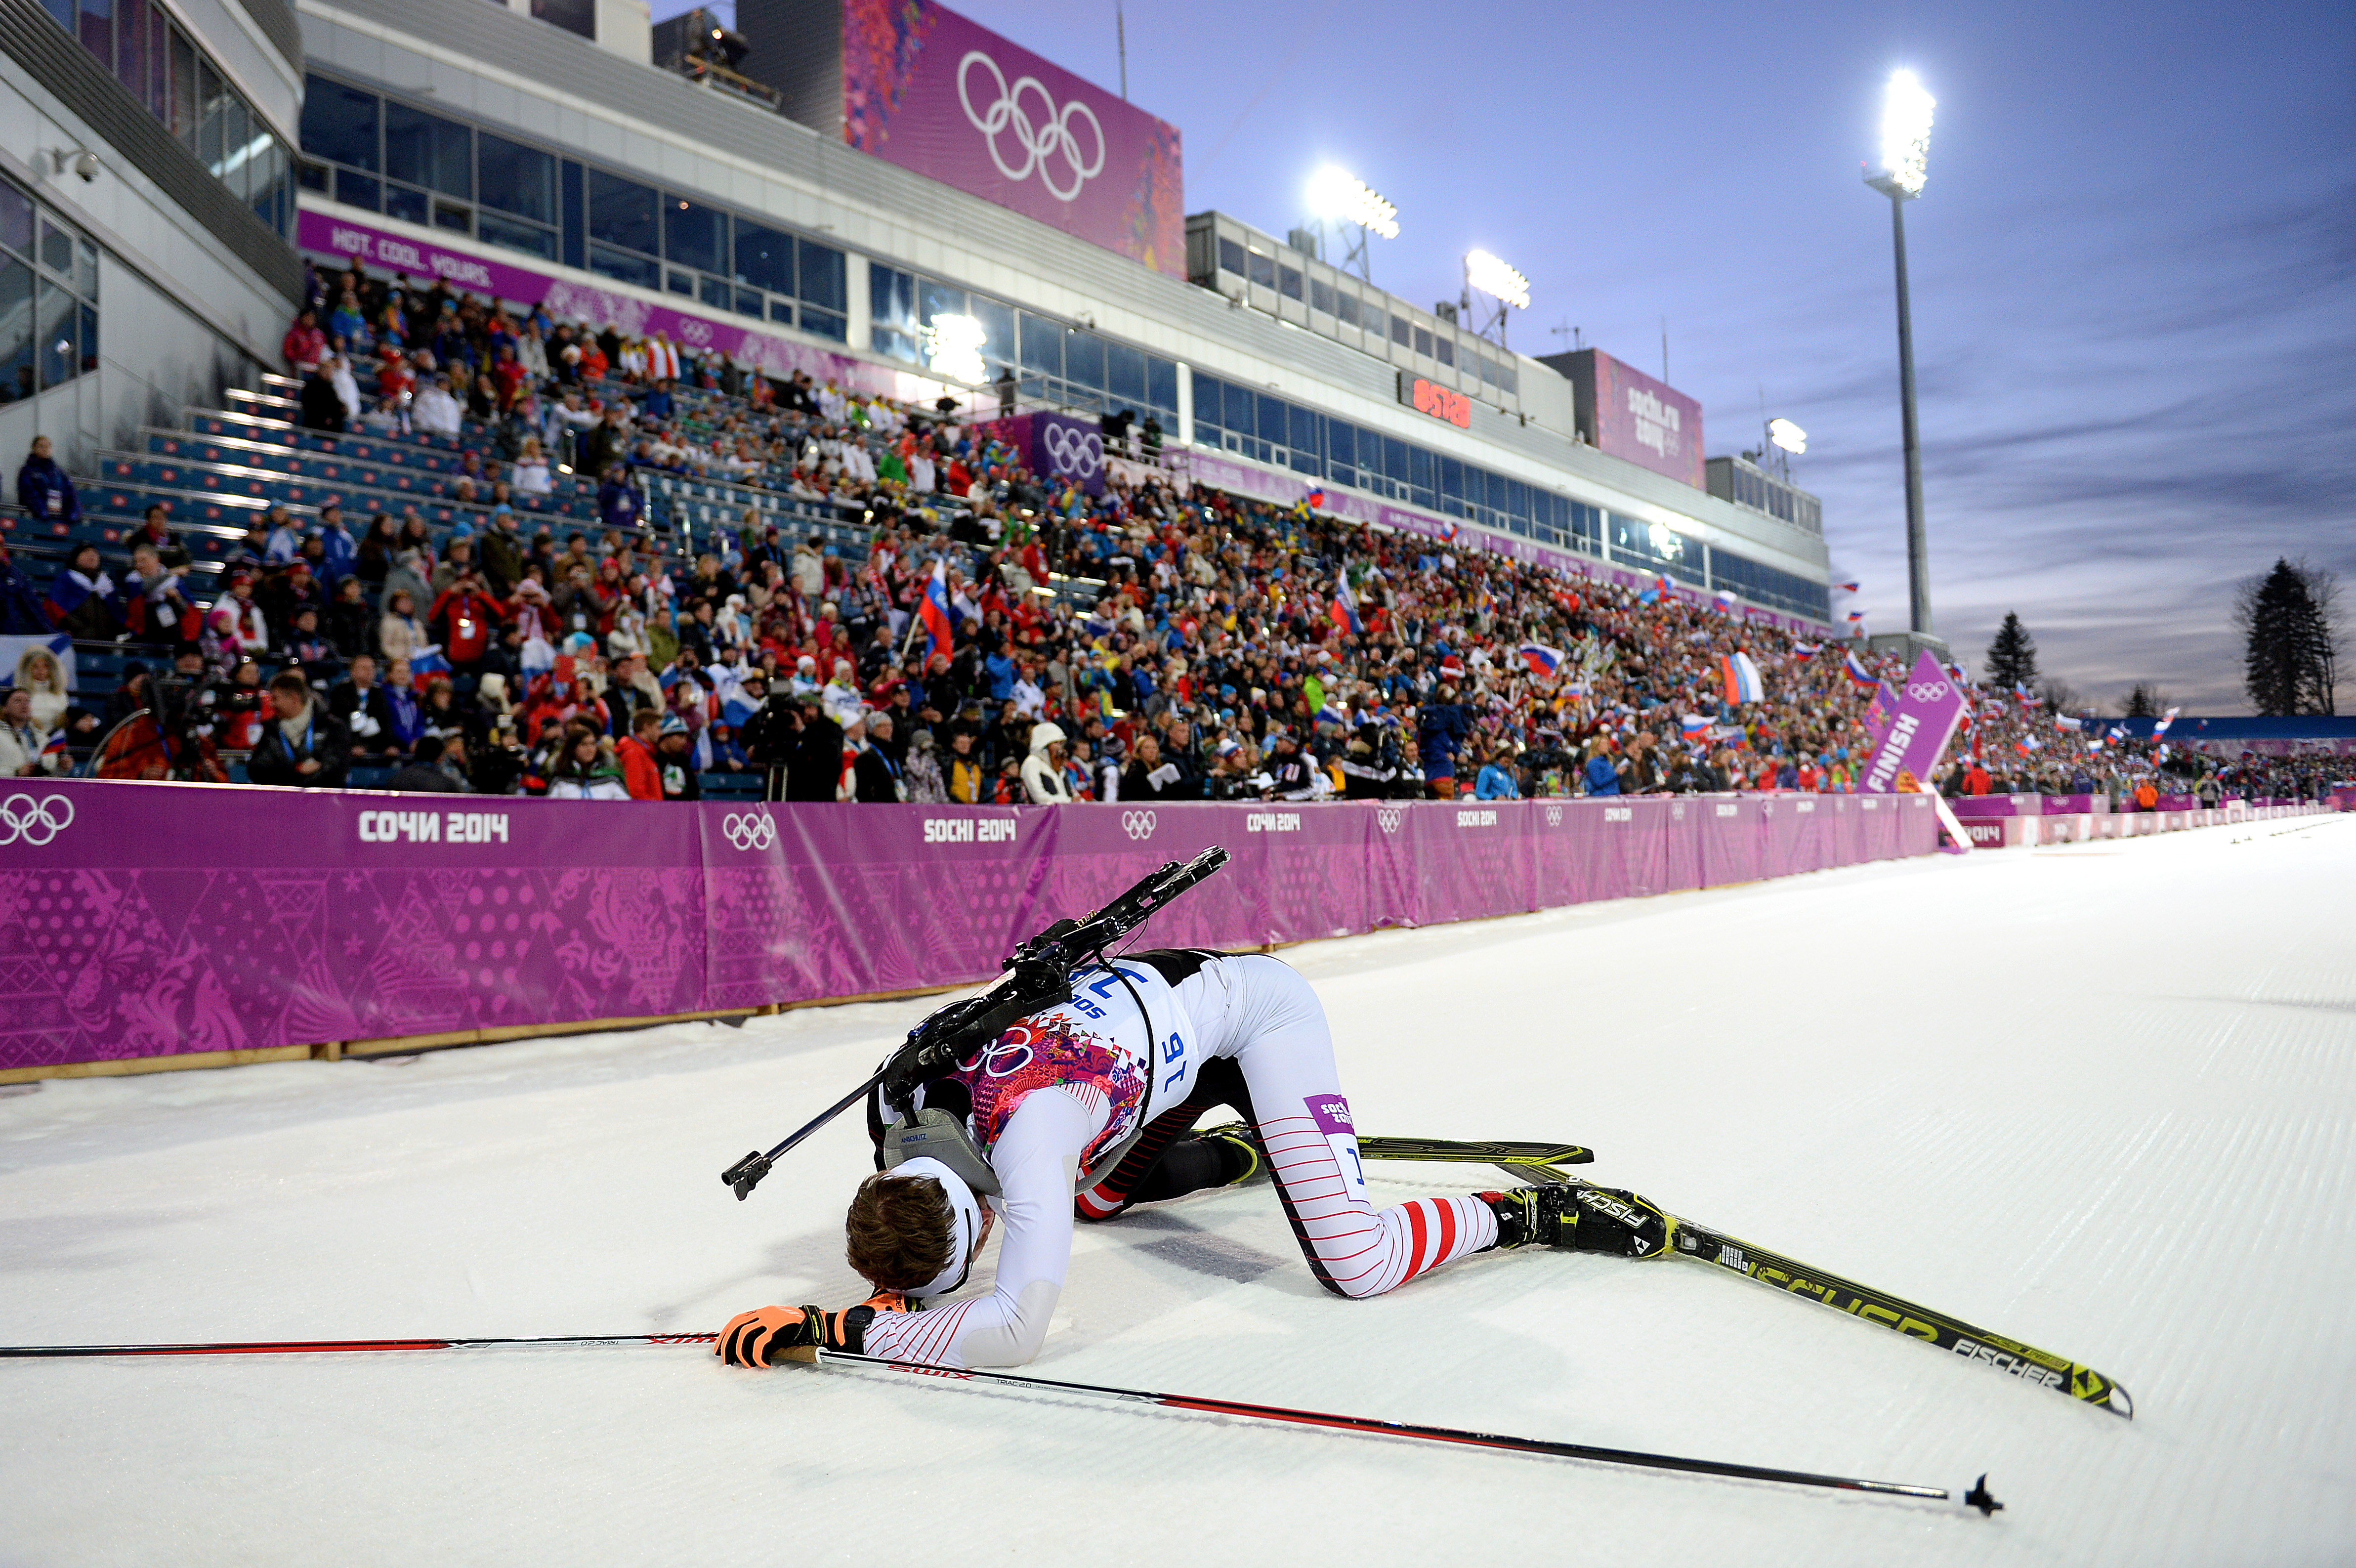 Simon Eder of Austria collapses in the snow after the Men's Individual 20 km.